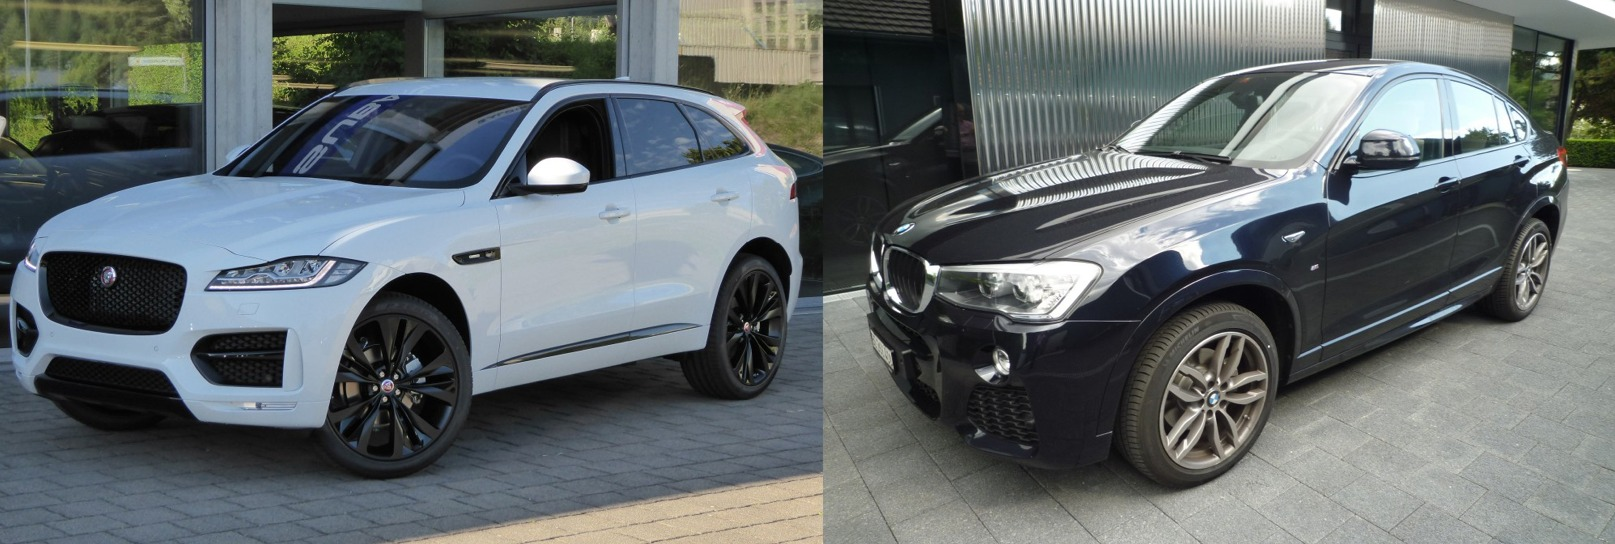 jaguar f pace vs bmw x4 2016 comparatif essai et avis auto2day. Black Bedroom Furniture Sets. Home Design Ideas